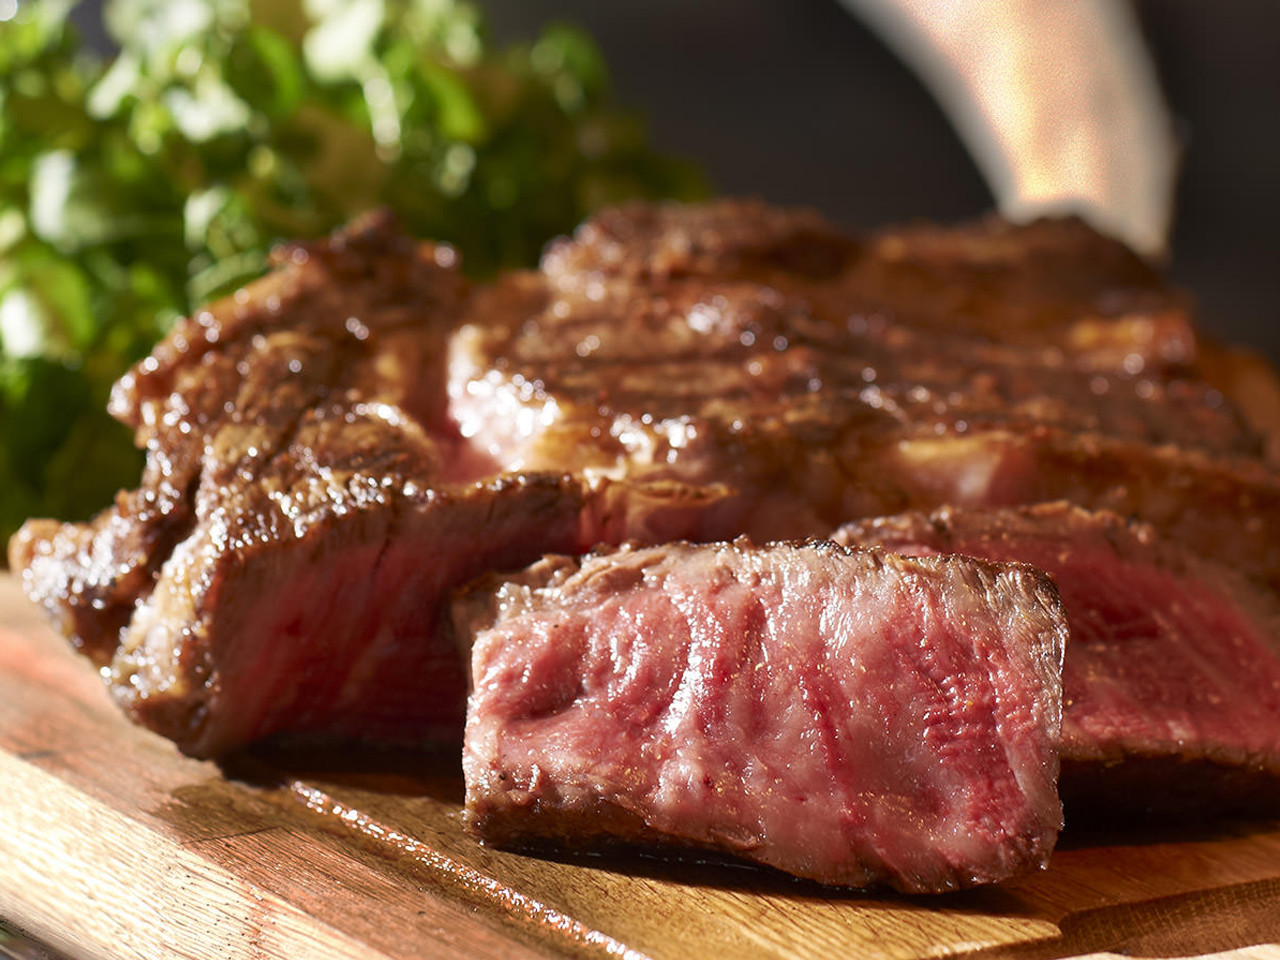 An iconic steakhouse featuring fresh ingredients dynamically prepared in oak wood-burning ovens.